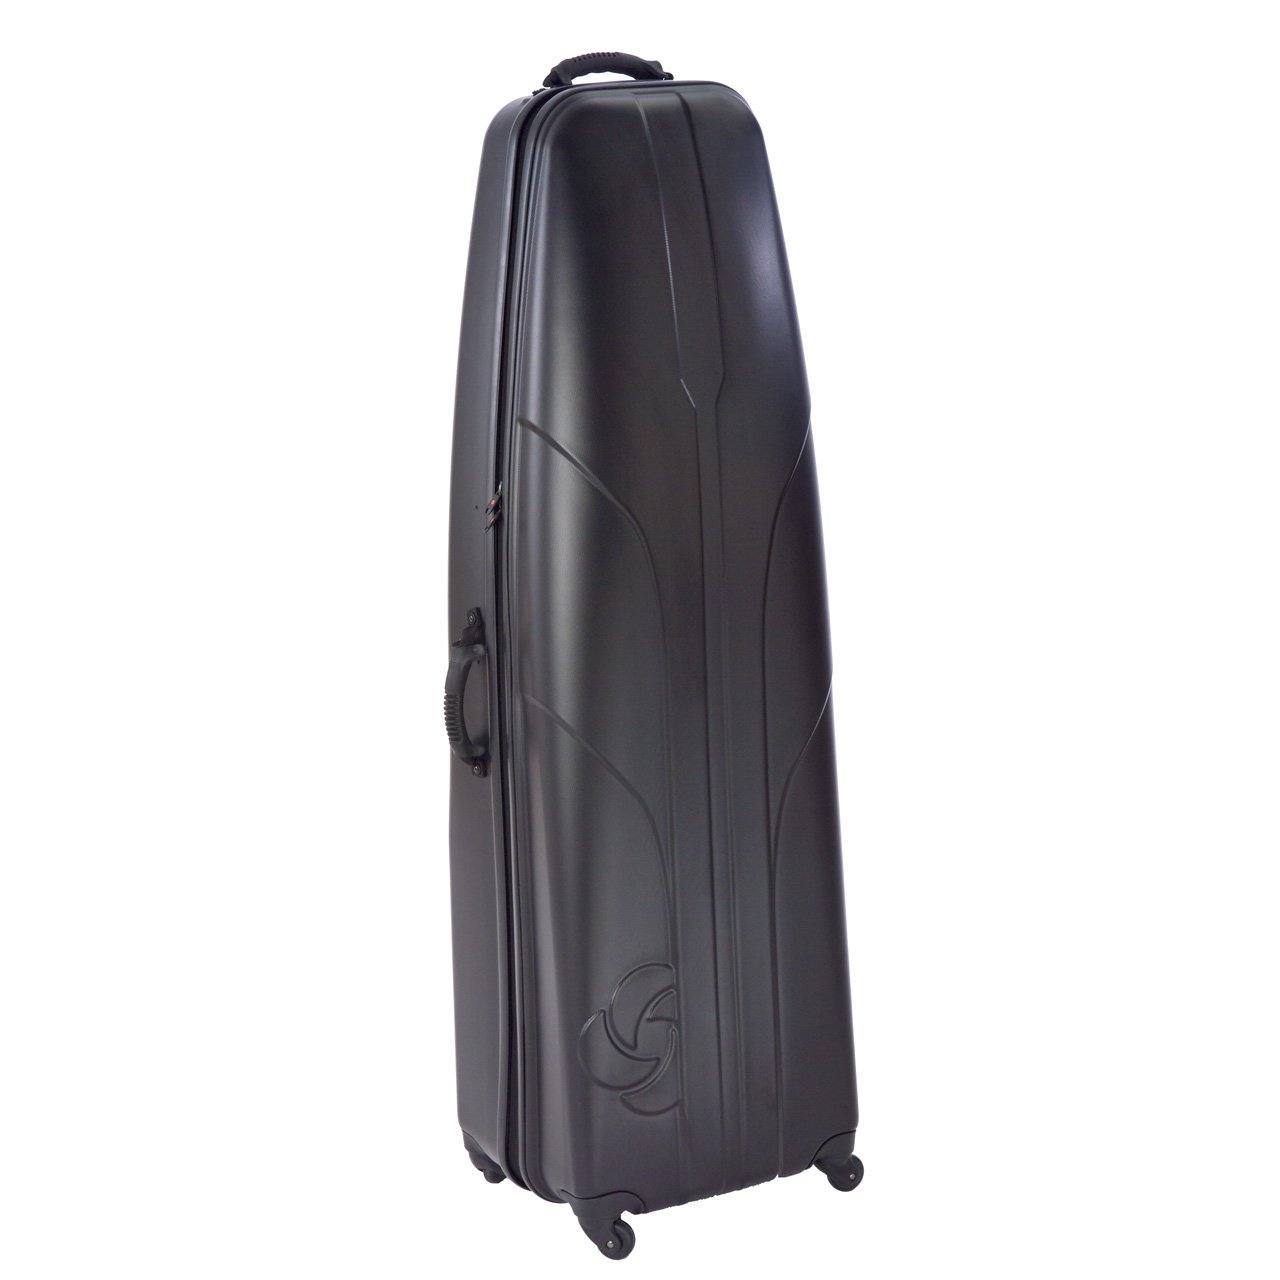 Amazon.com : Samsonite Golf Hard-Sided Travel Cover Case, Black ...